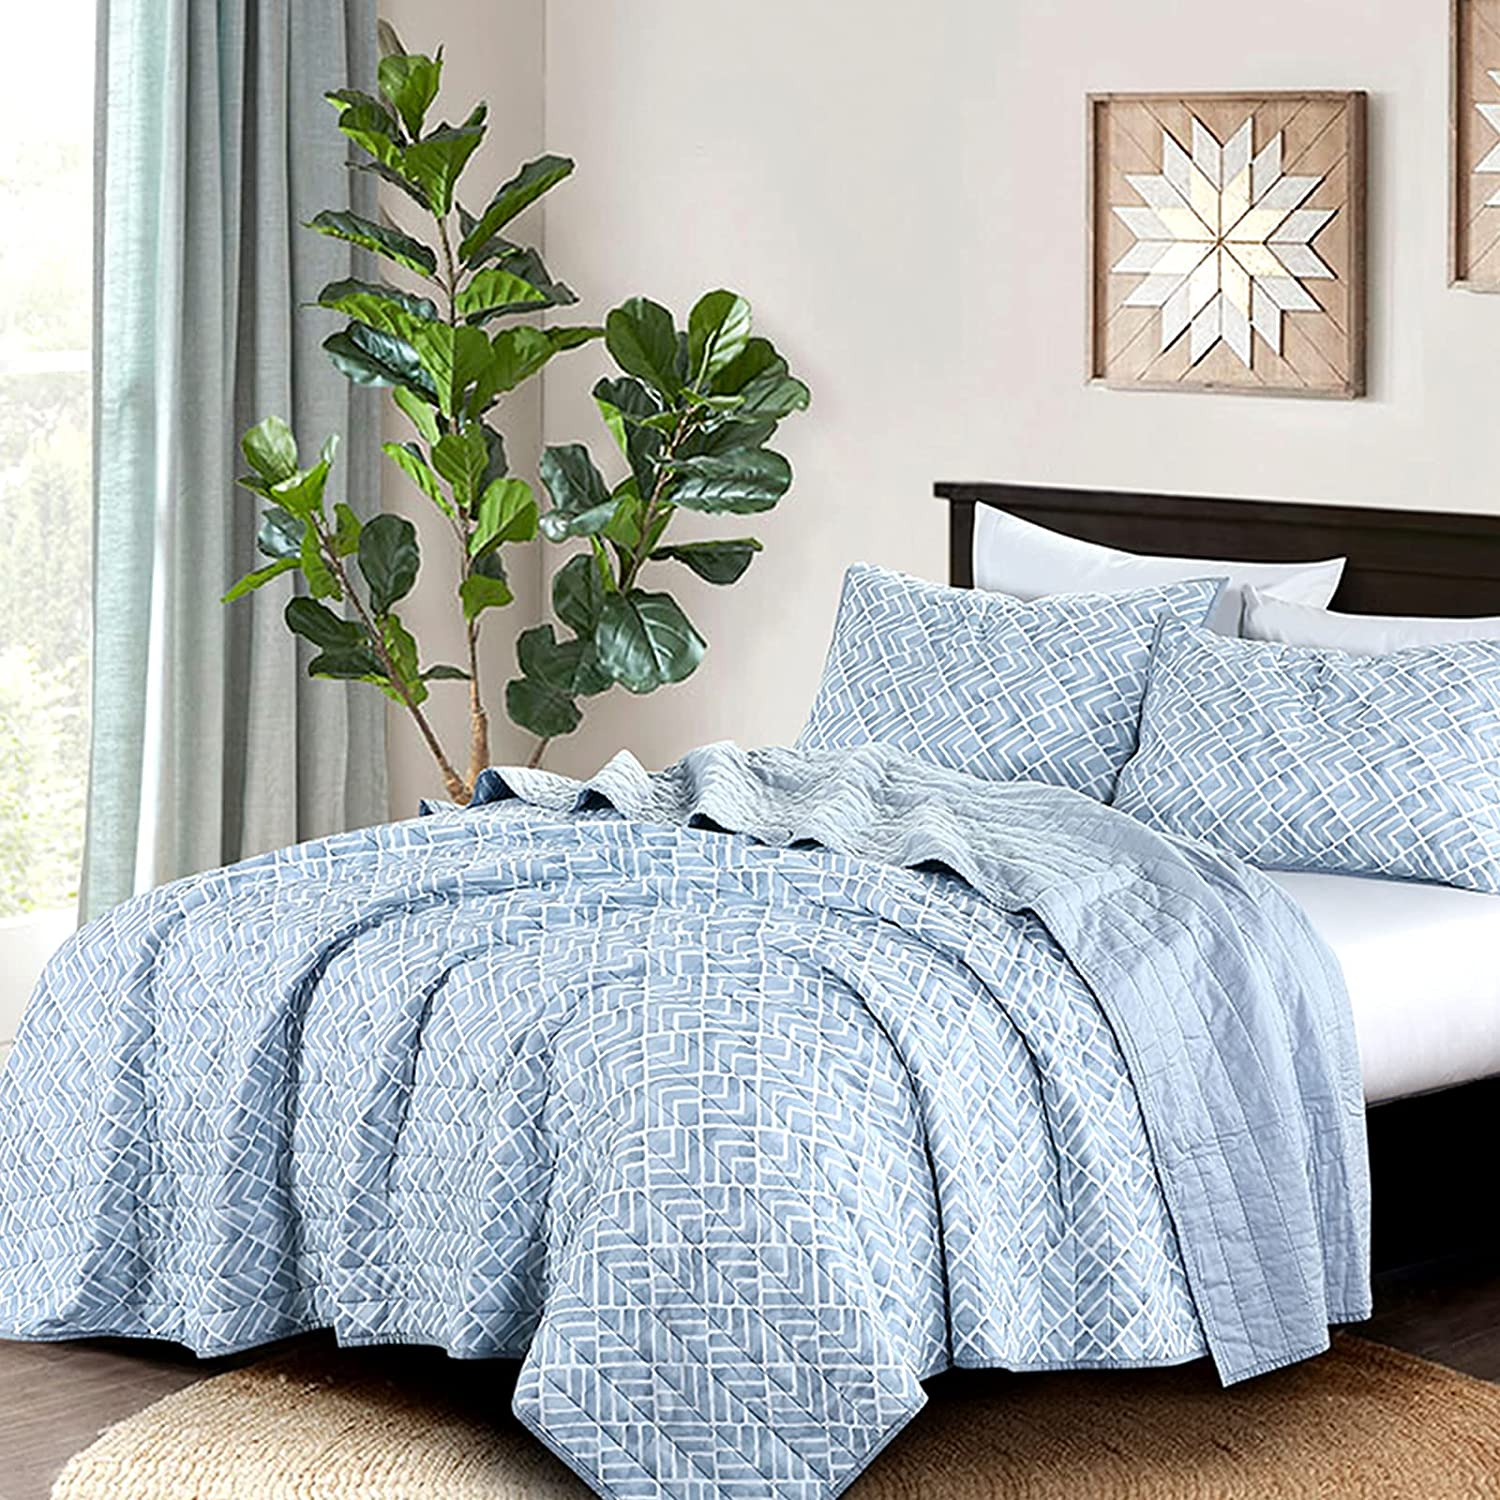 Wellbeing King Quilt Cotton Lightweight Courier shipping 40% OFF Cheap Sale free Bed Watercolor Geometric